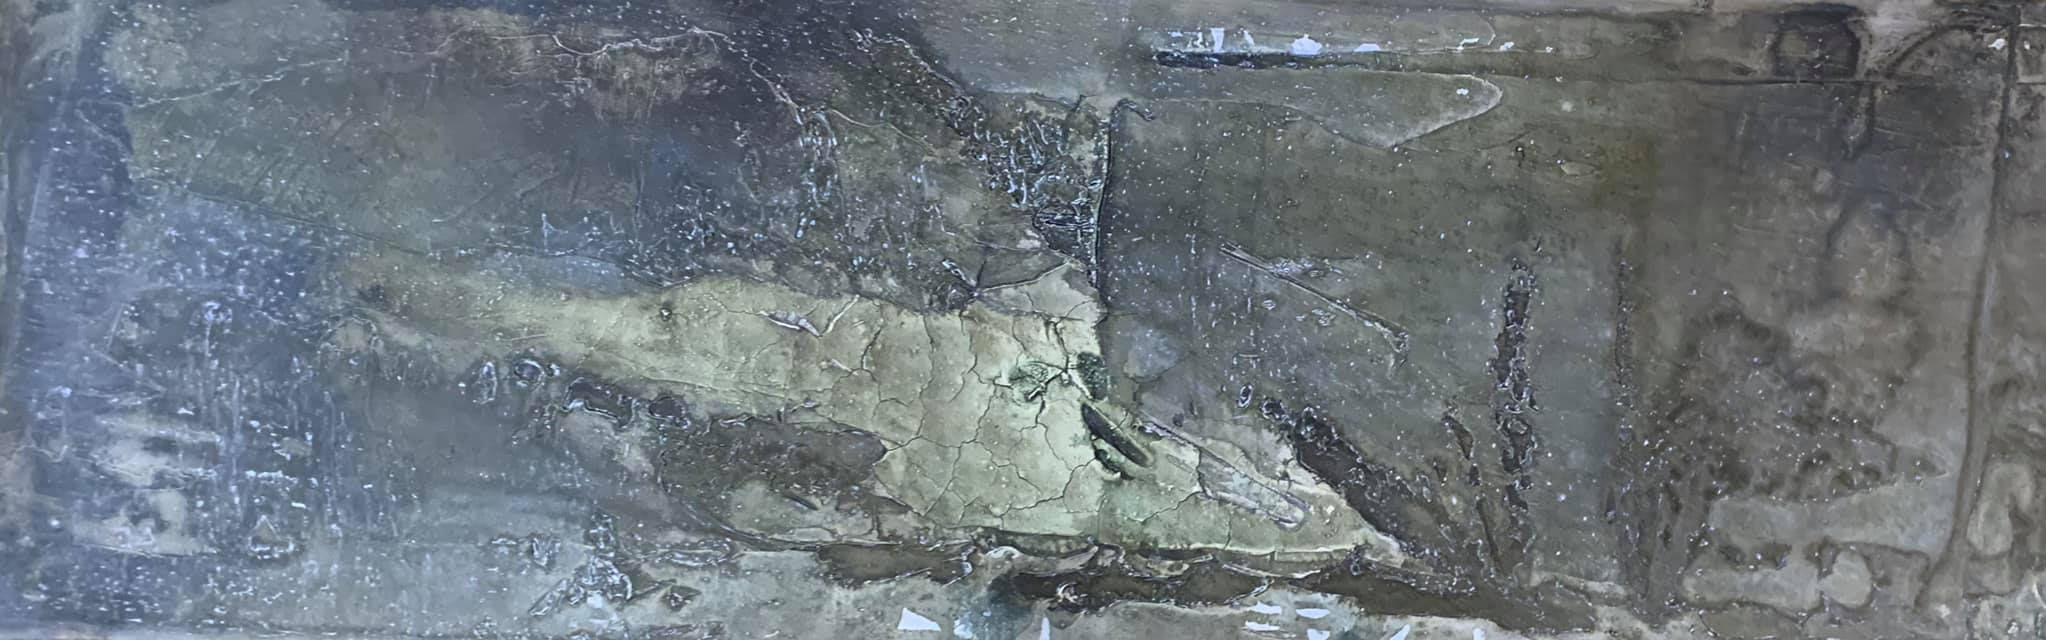 Fossil, 40cm x 1,20m x 4,5cm, Mixed Media,